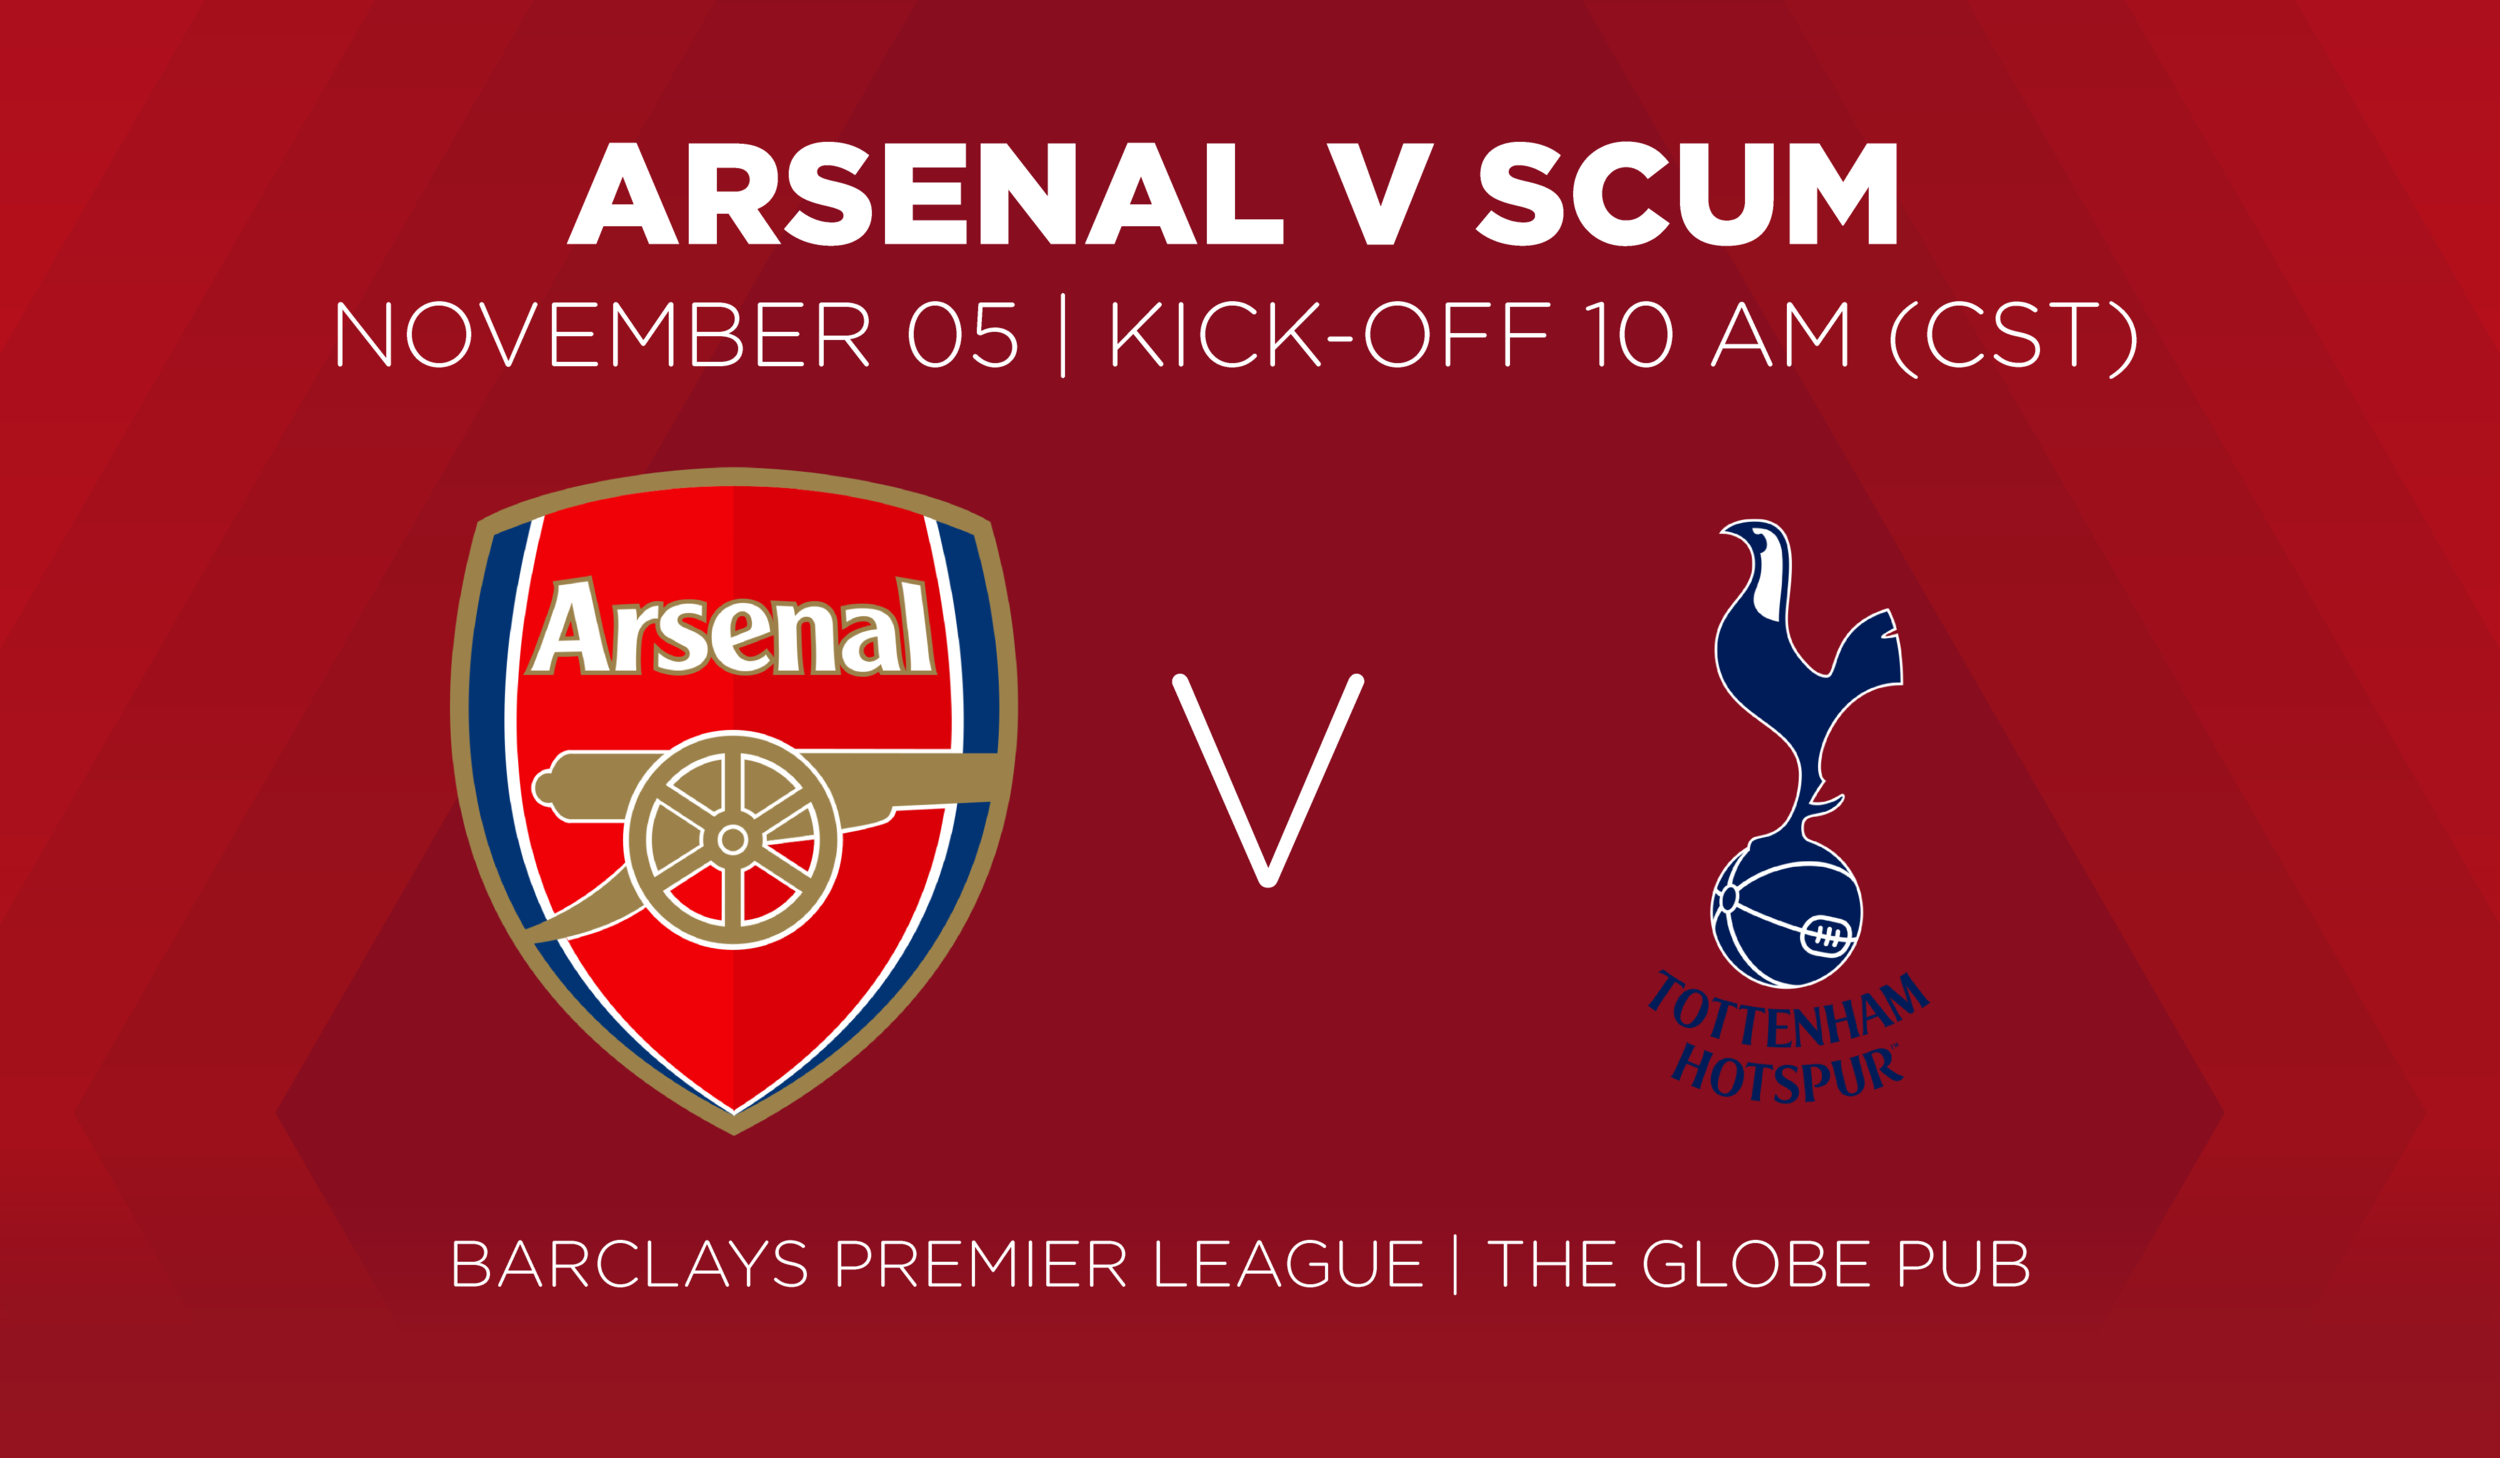 Arsenal V Scum